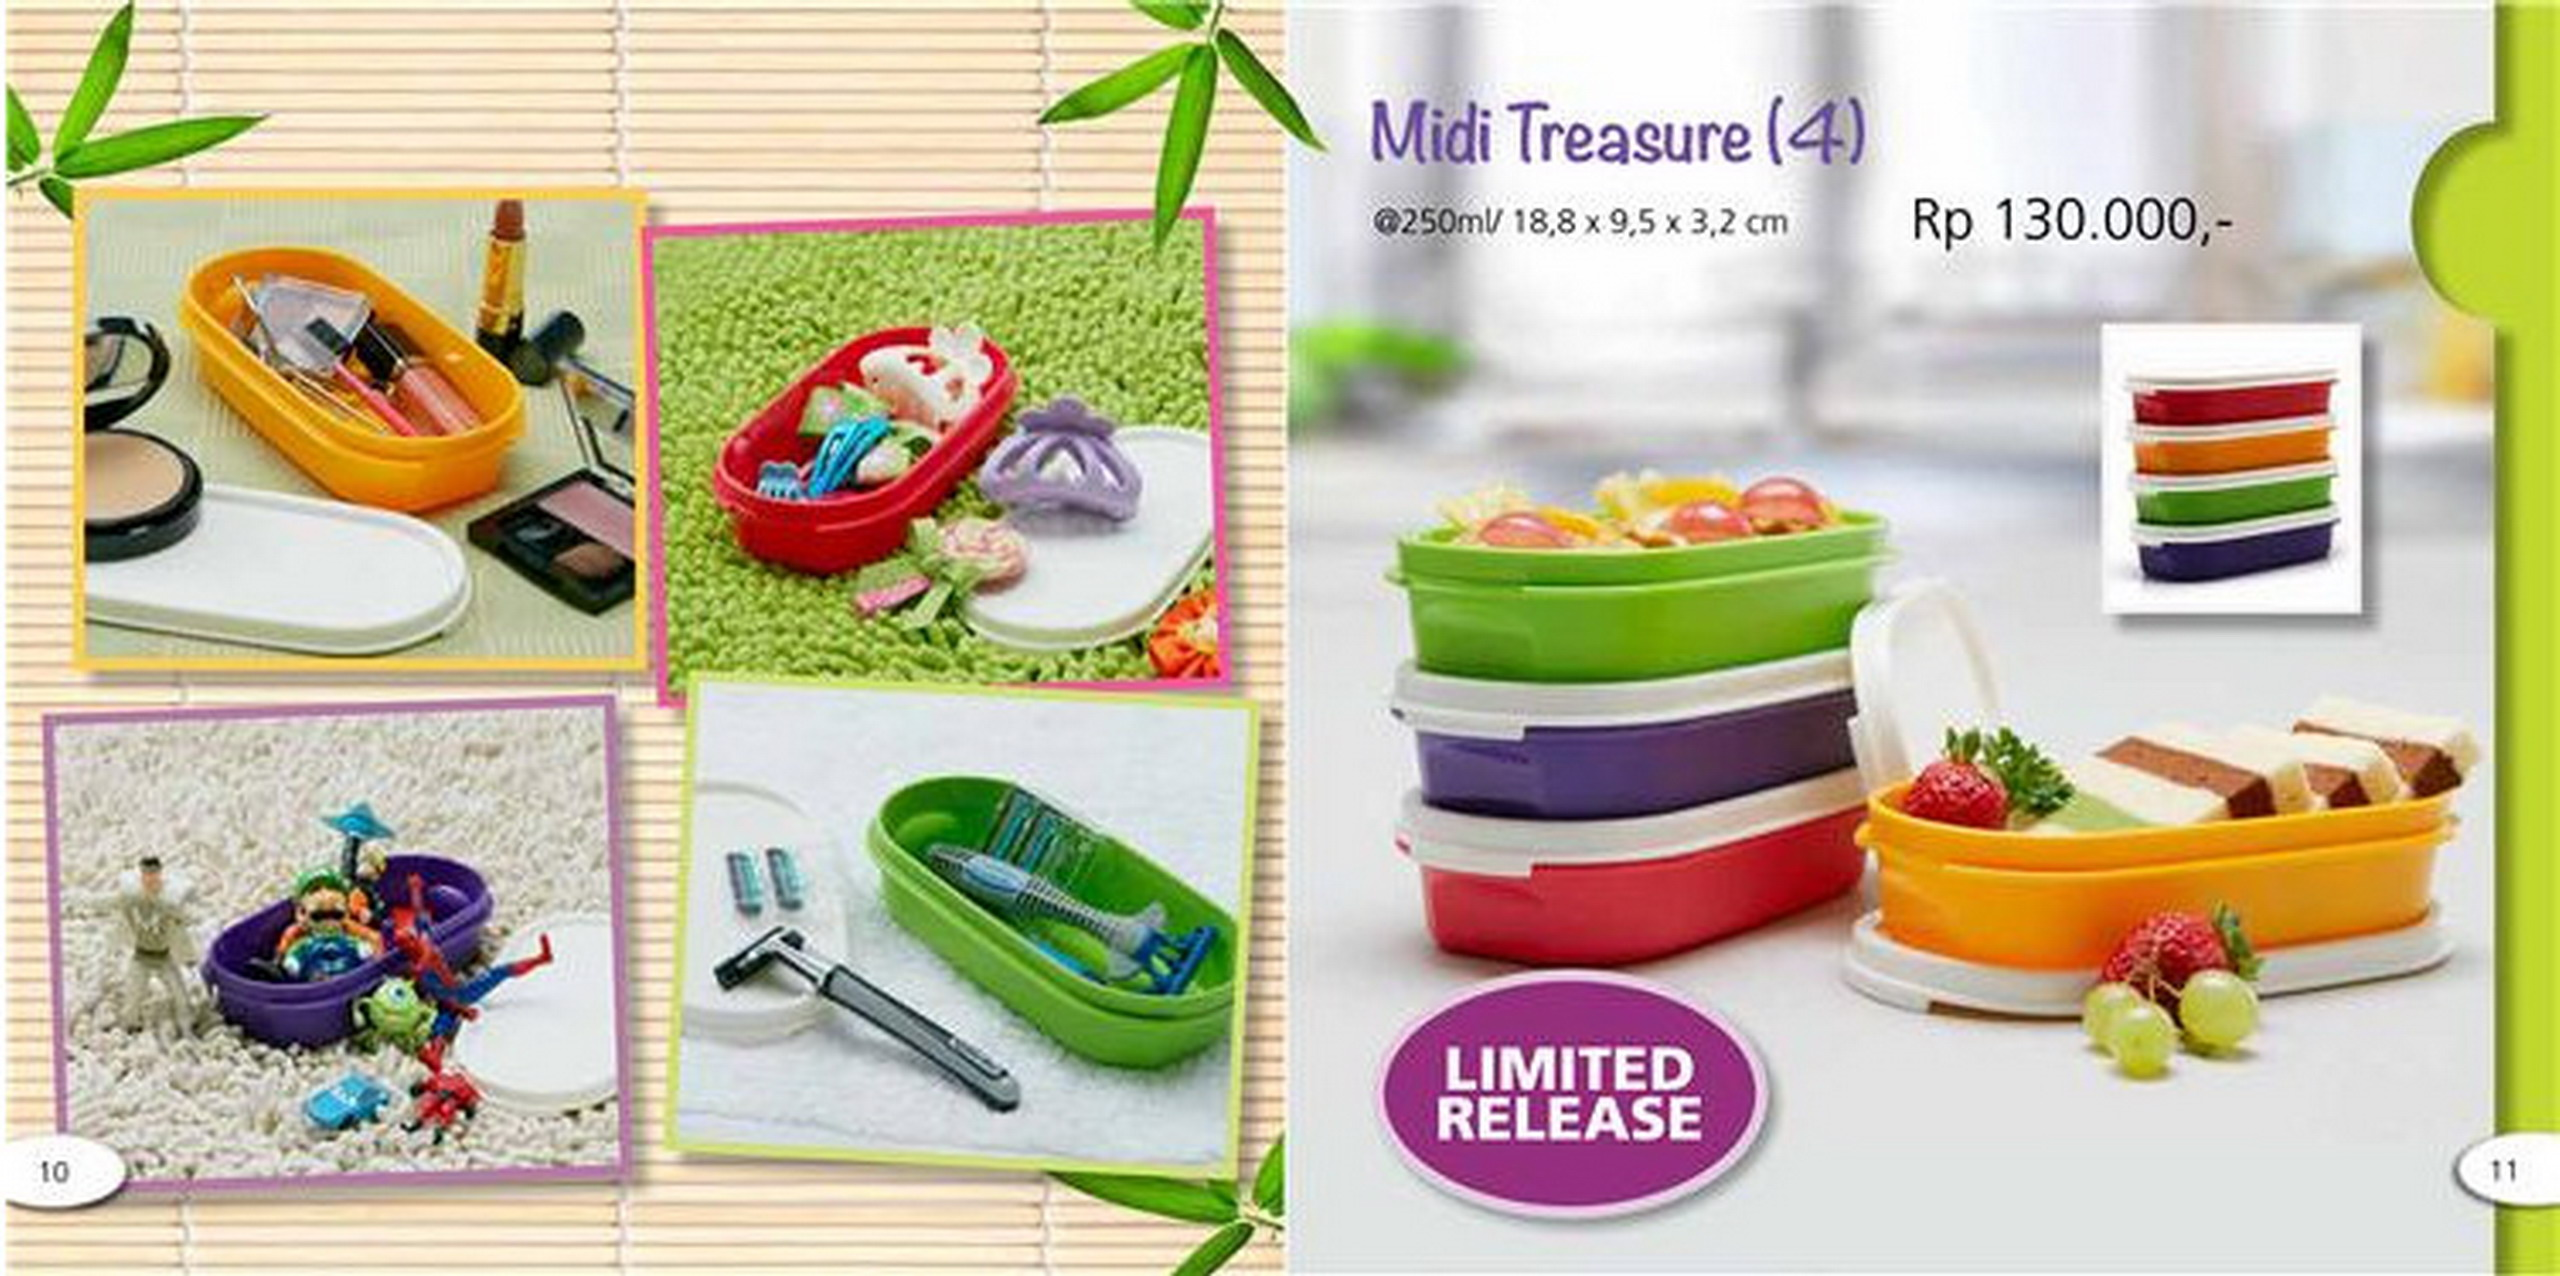 Katalog Tupperware Midi Treasure 4 TUPPERWARE INDONESIA. Katalog ...